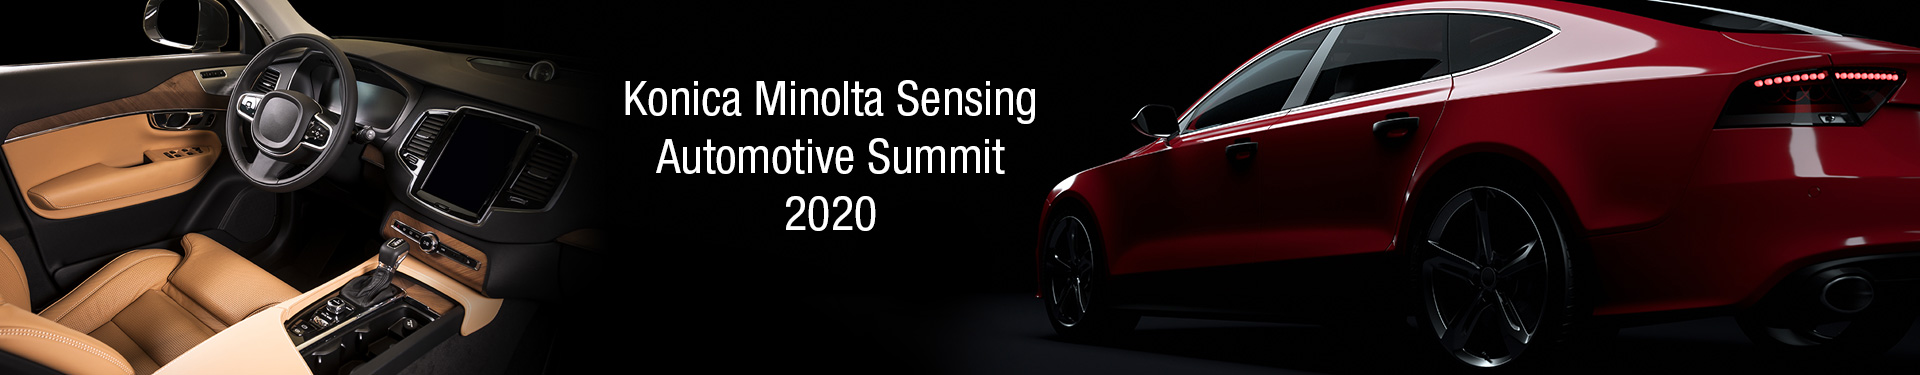 Konica Minolta Automotive Summit 2020